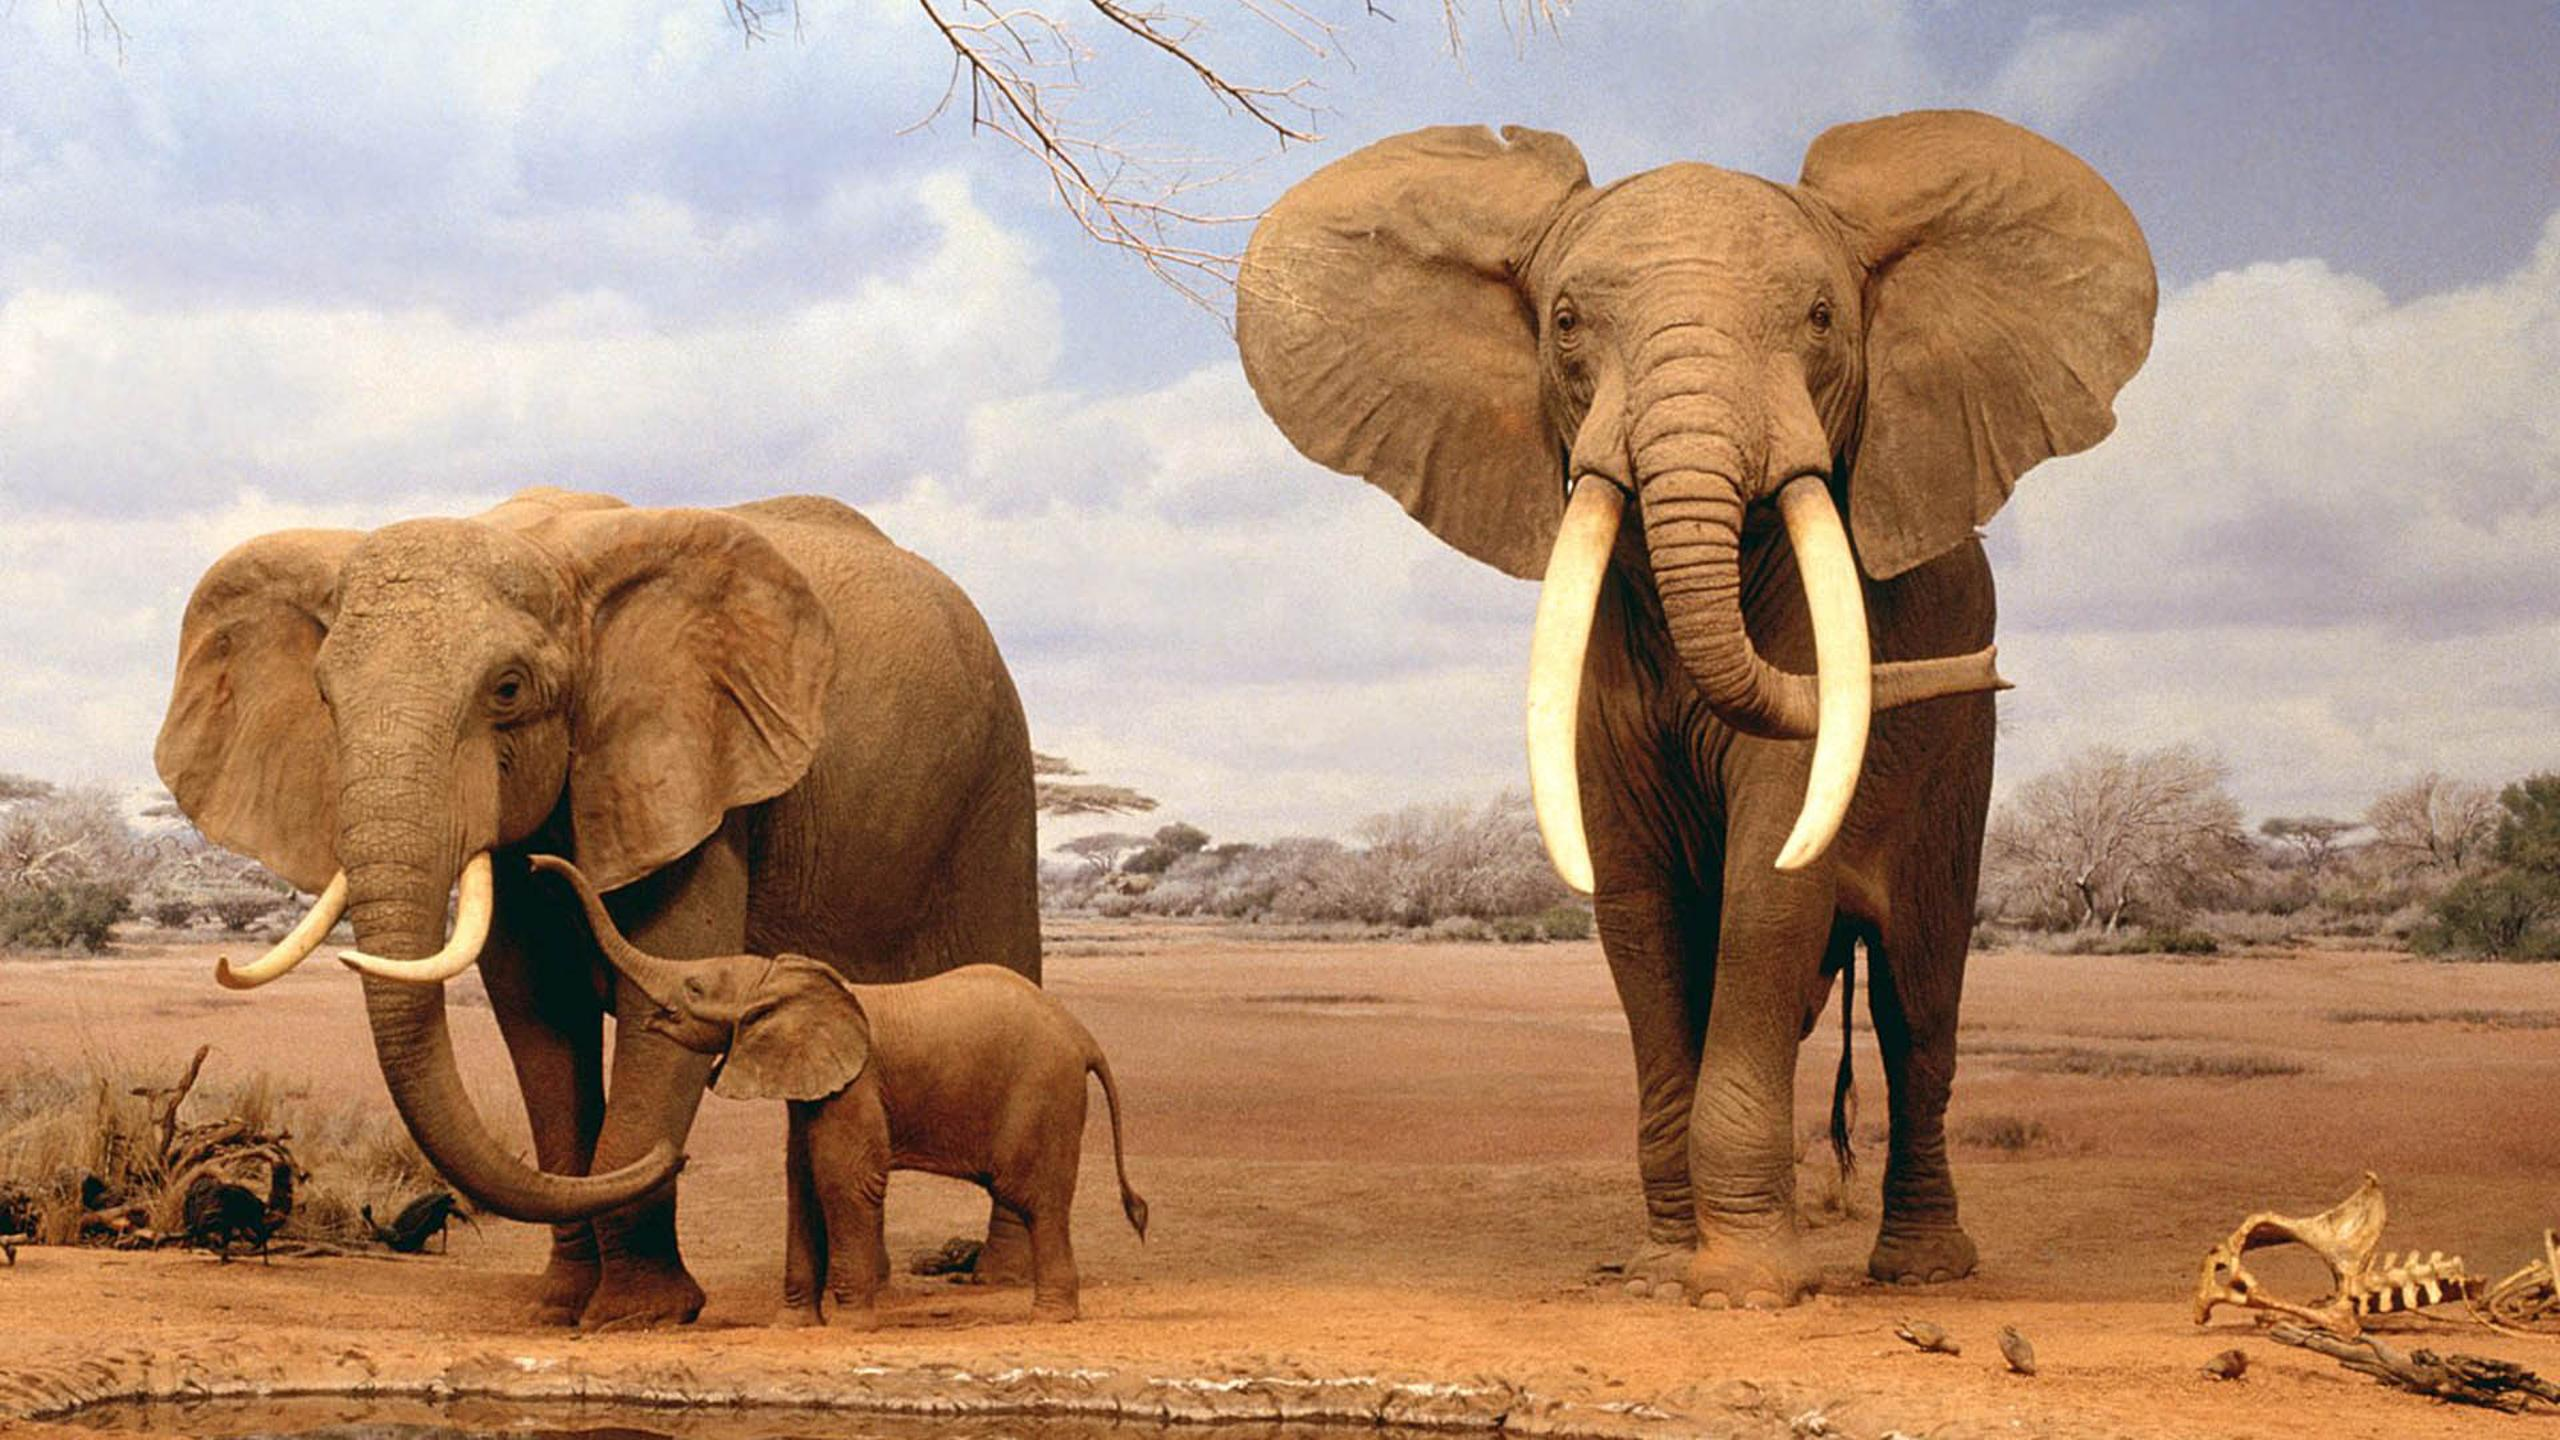 elephant family in the dessert - hd wild animal wallpaper download